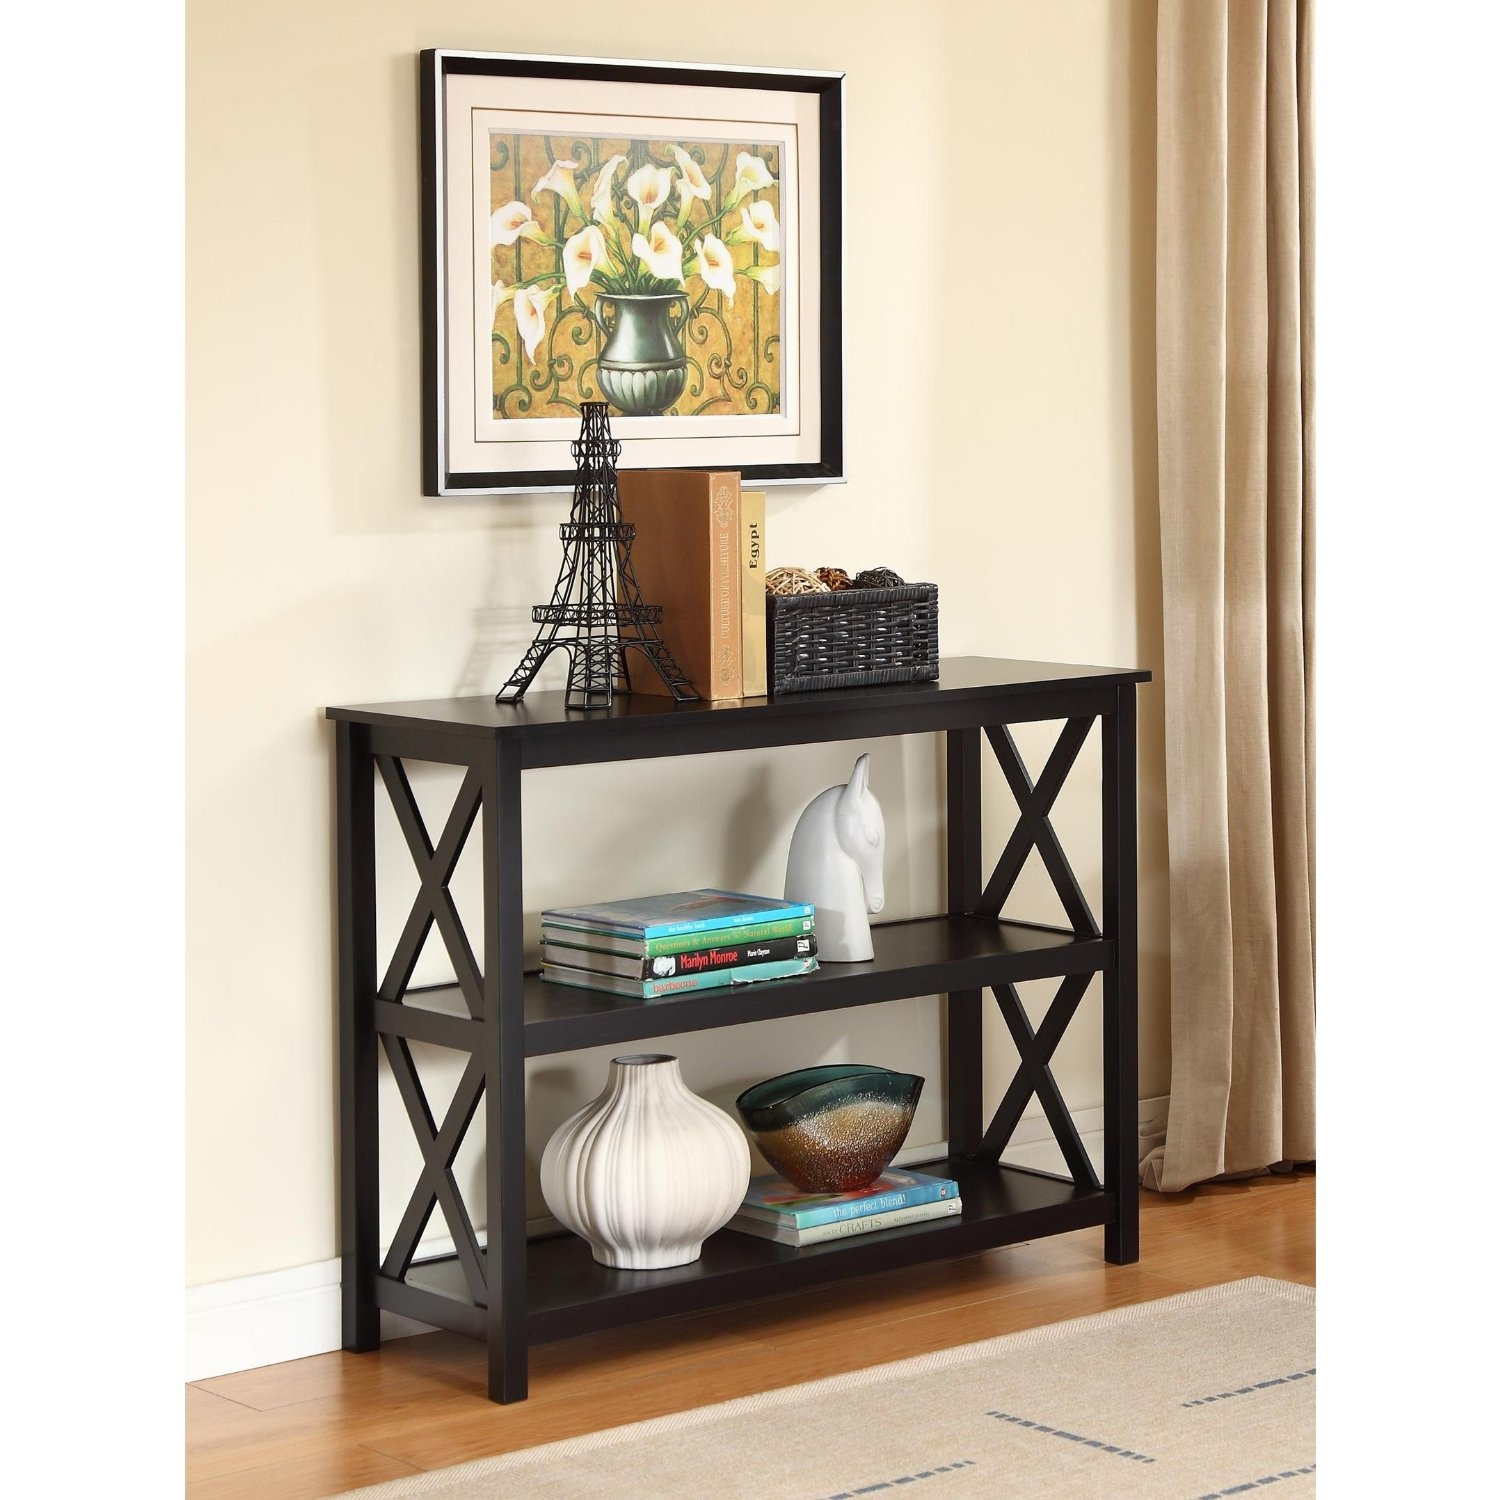 3tier Black Sofa Table Bookcase Living Room Shelves